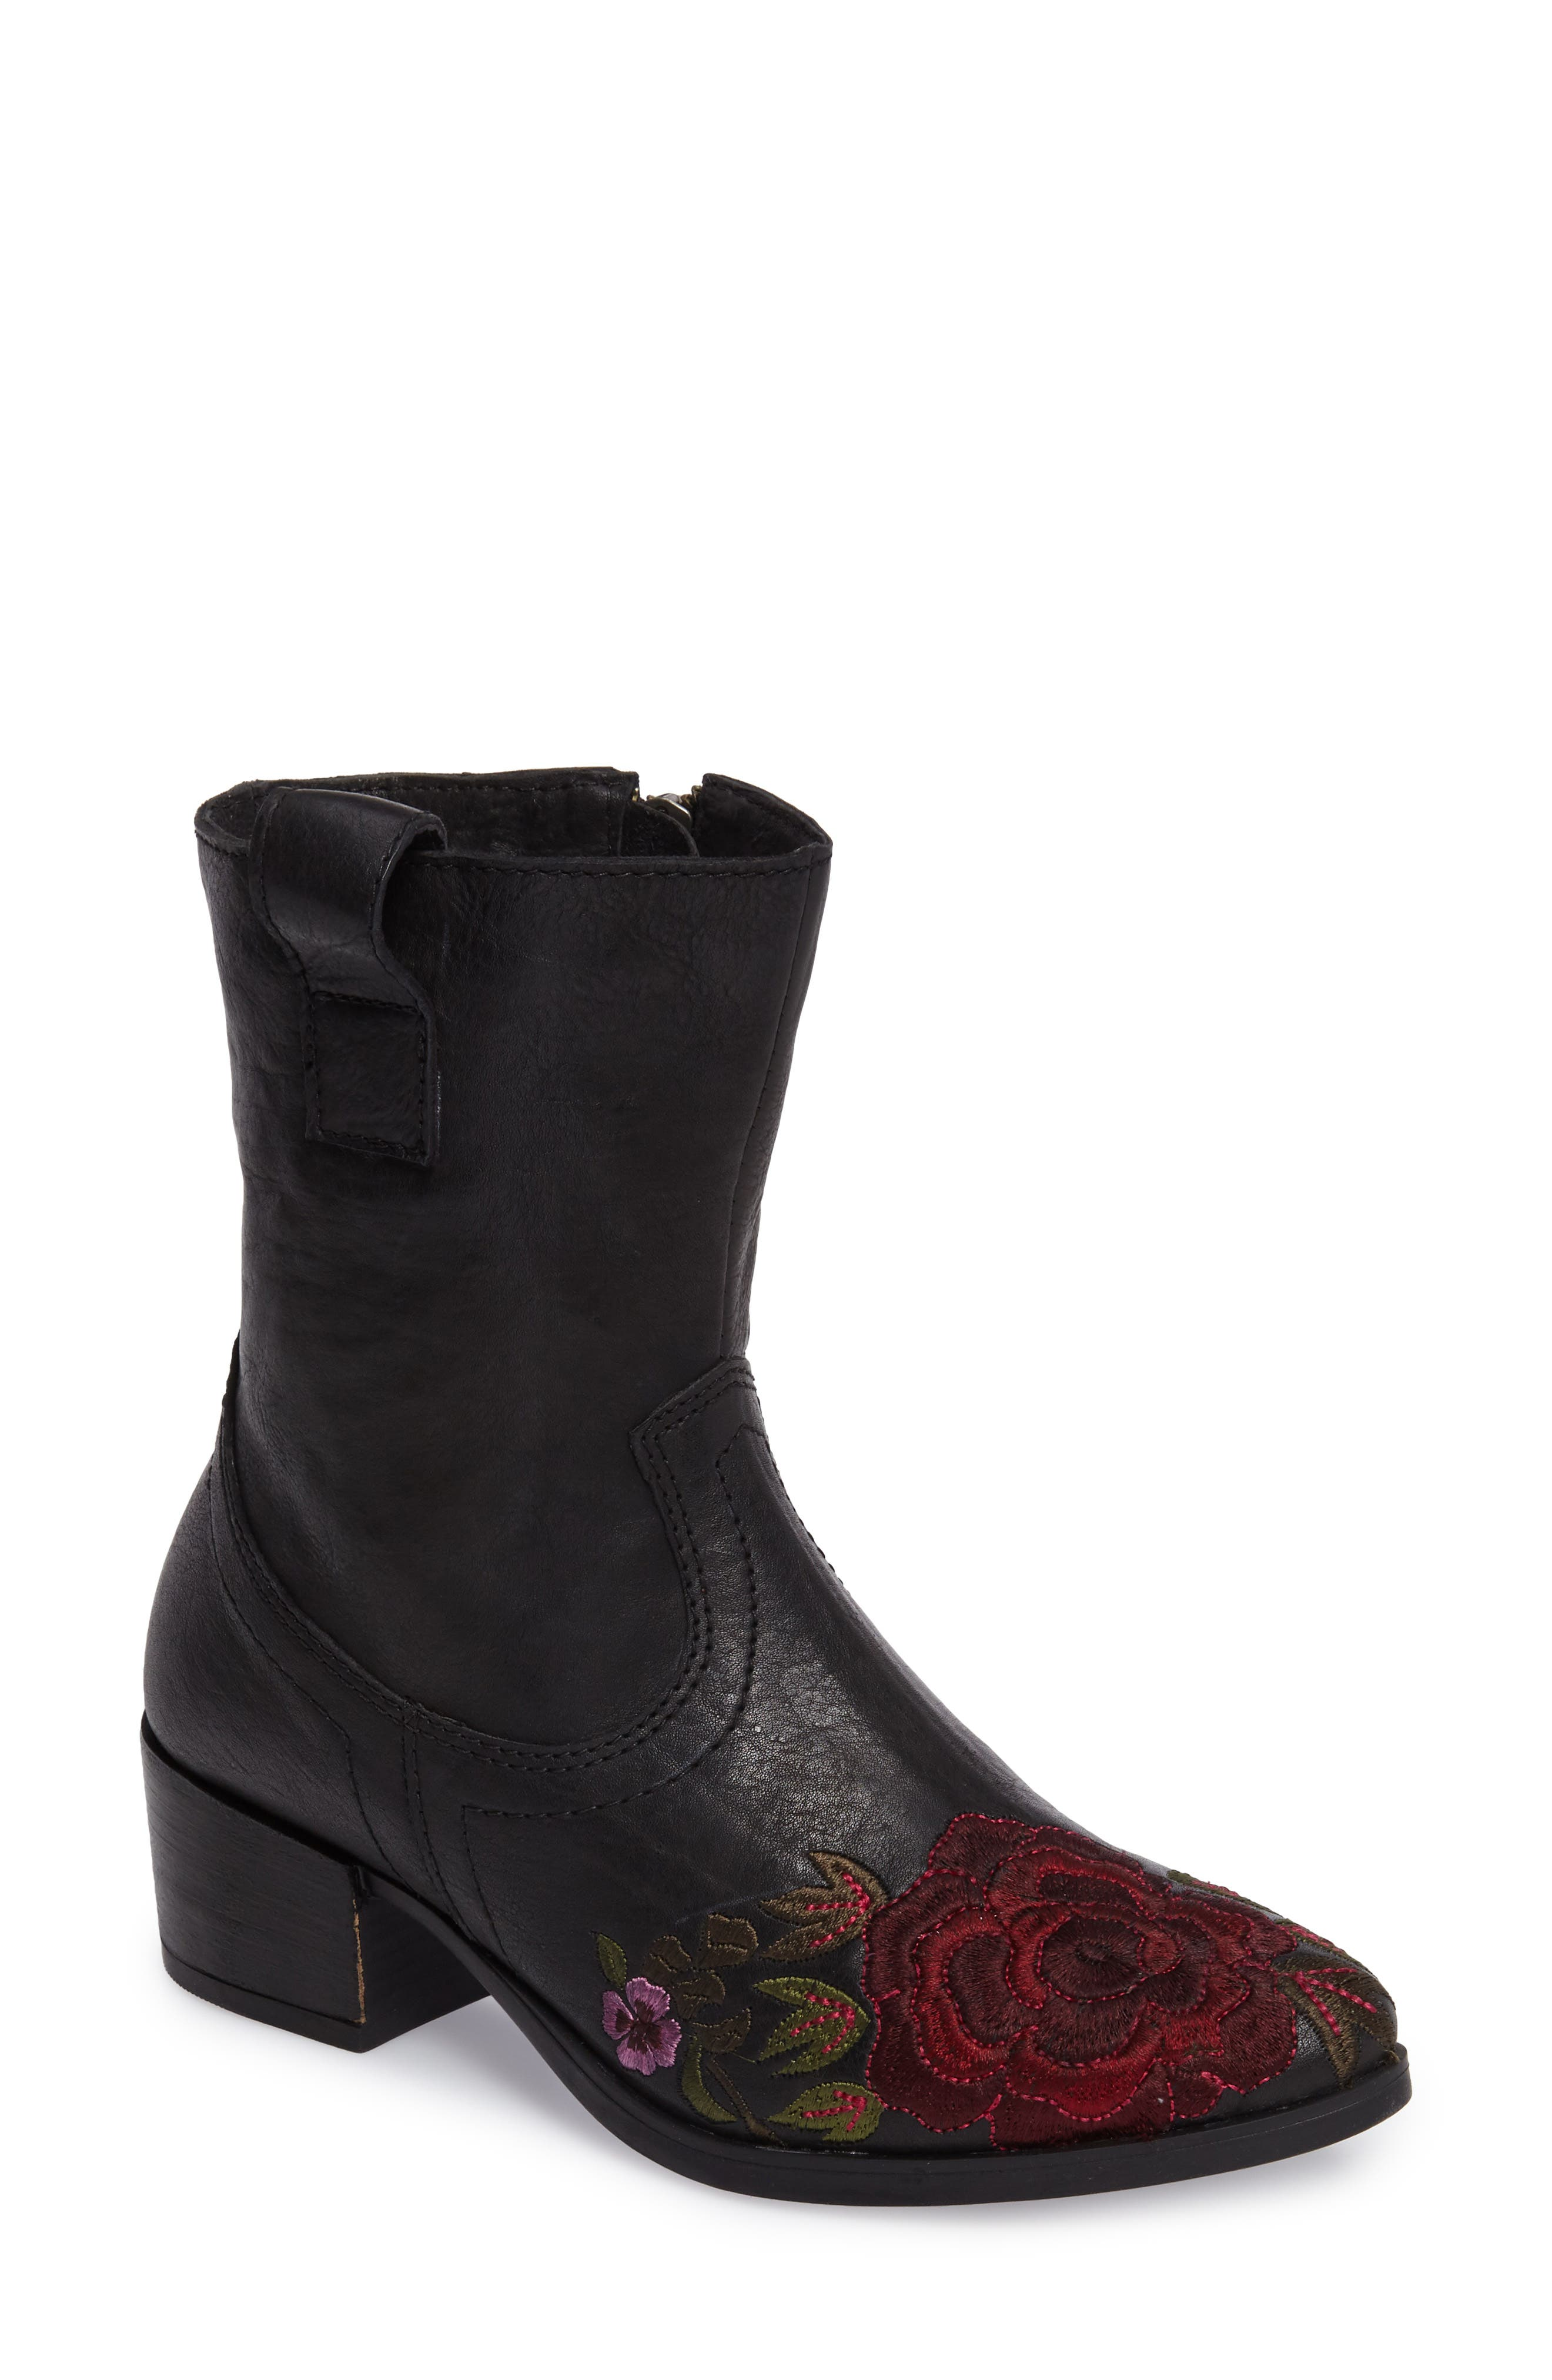 Shallot Floral Embroidered Bootie,                             Main thumbnail 1, color,                             Black Leather